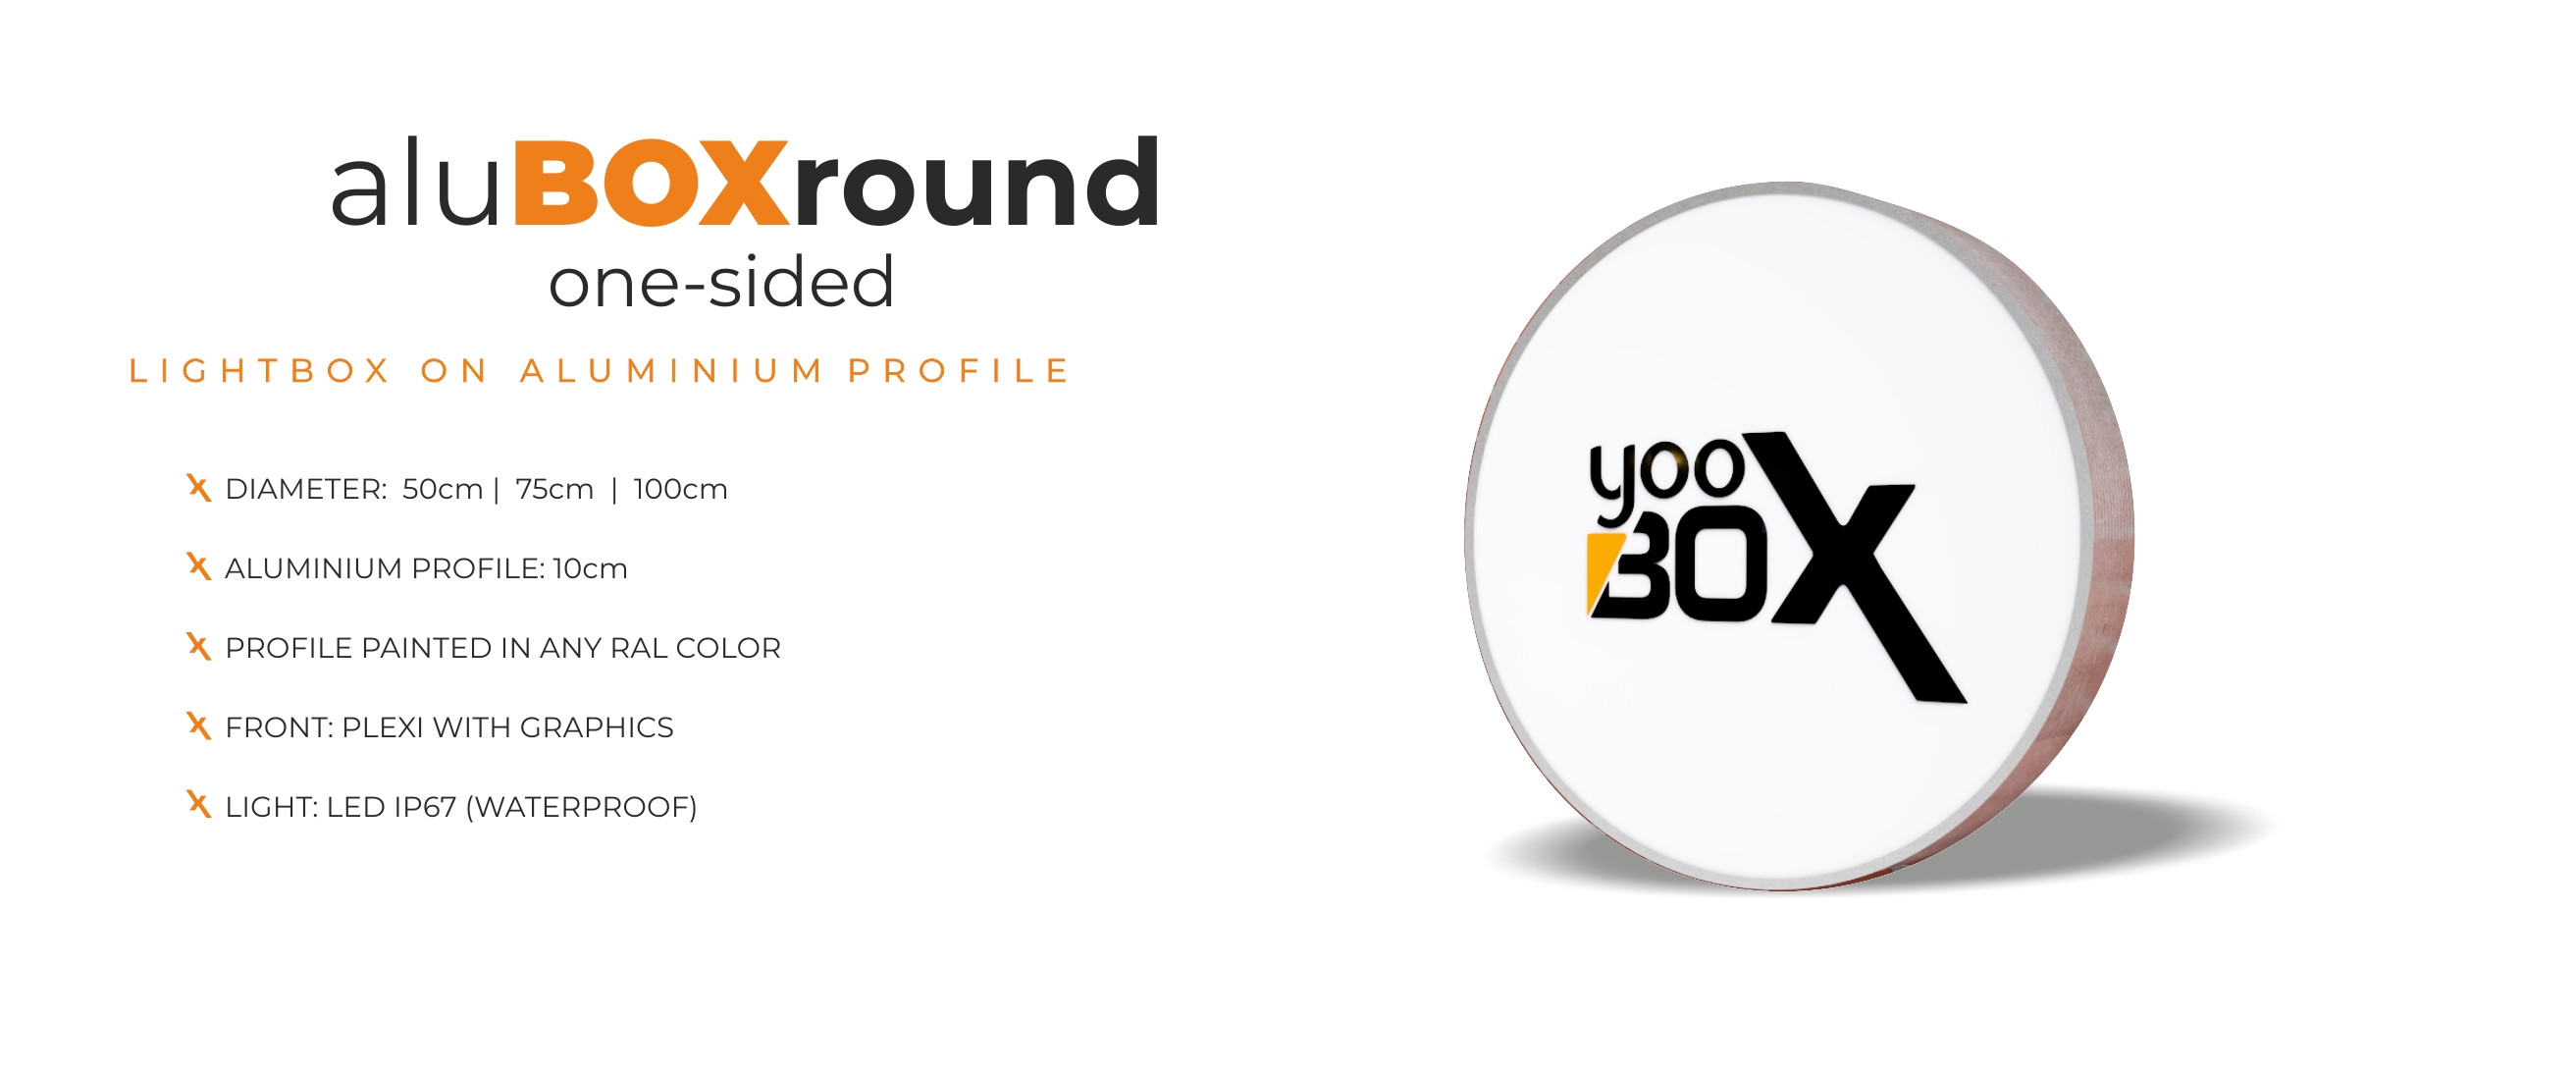 aluBOX round one-sided